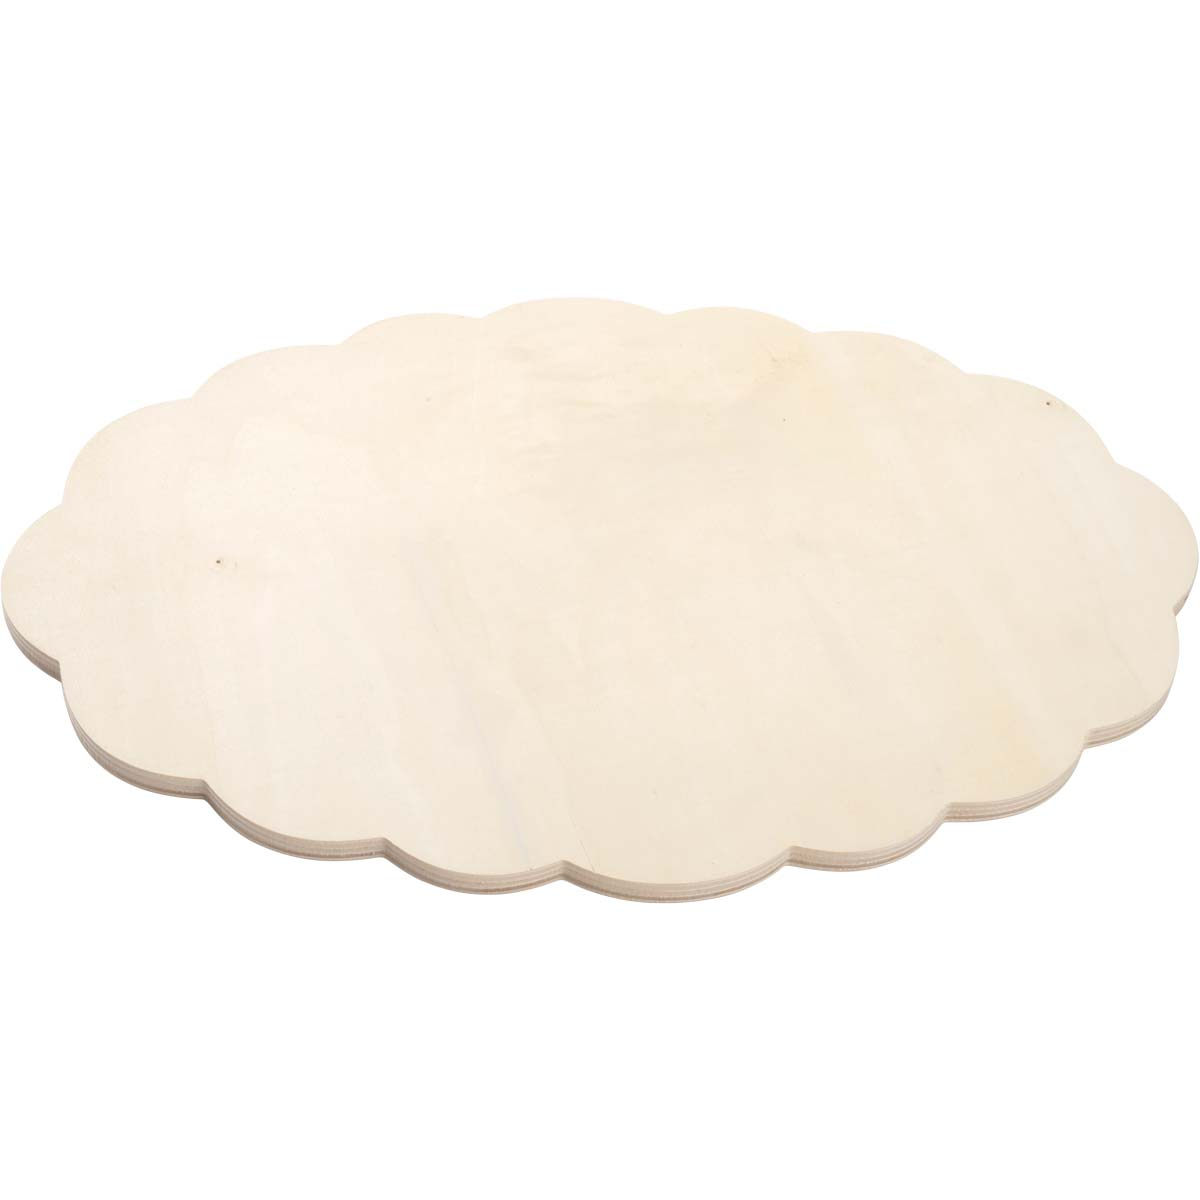 Plaid ® Wood Surfaces - Plaques - Extra Large Oval Scallop - 56690